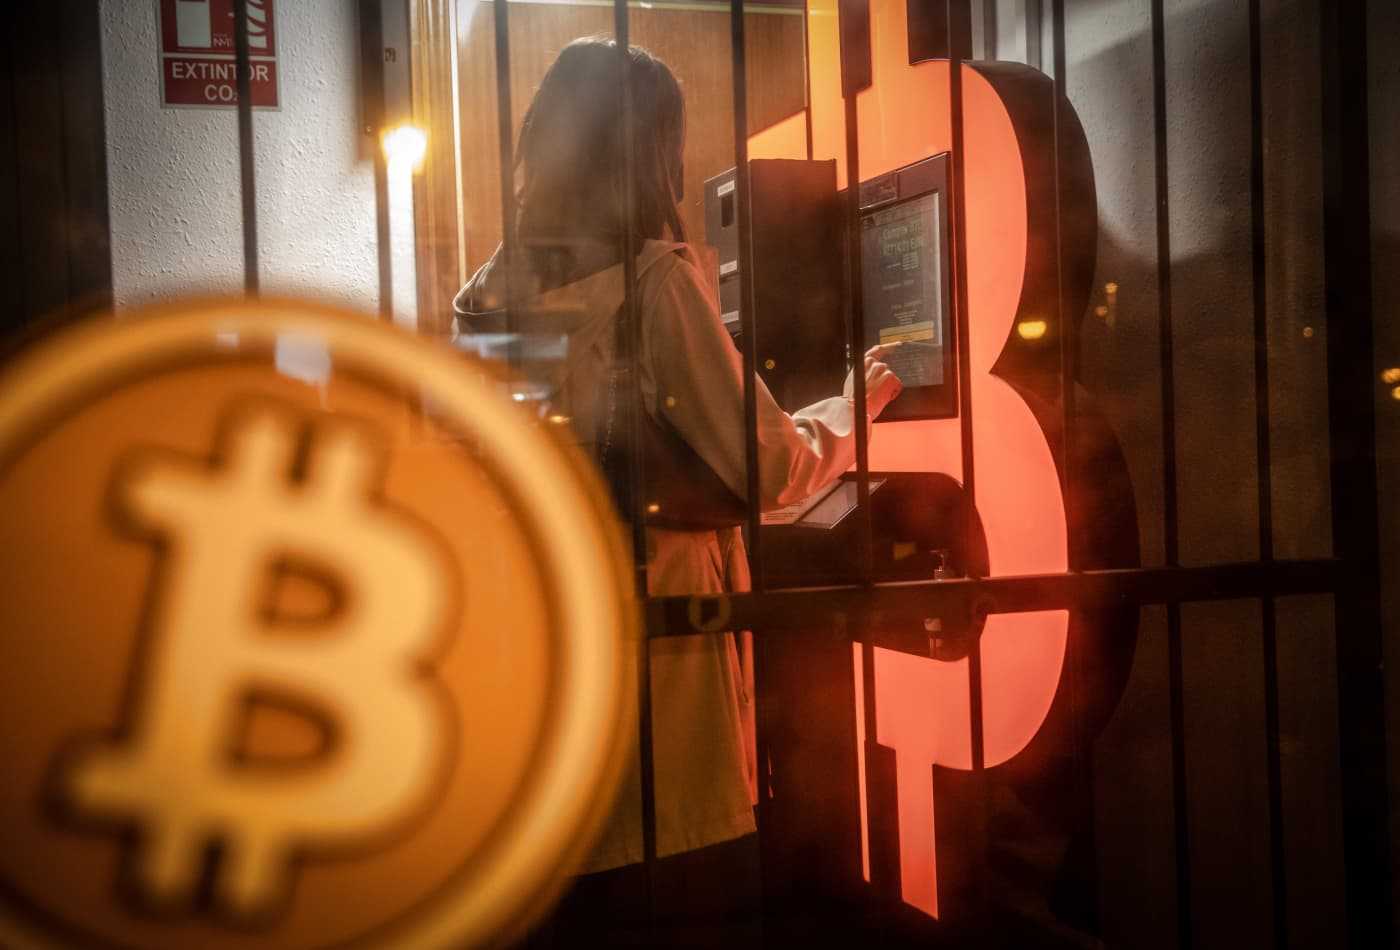 Bitcoin is at a tipping point and could become 'currency of choice' for global trade, Citi says